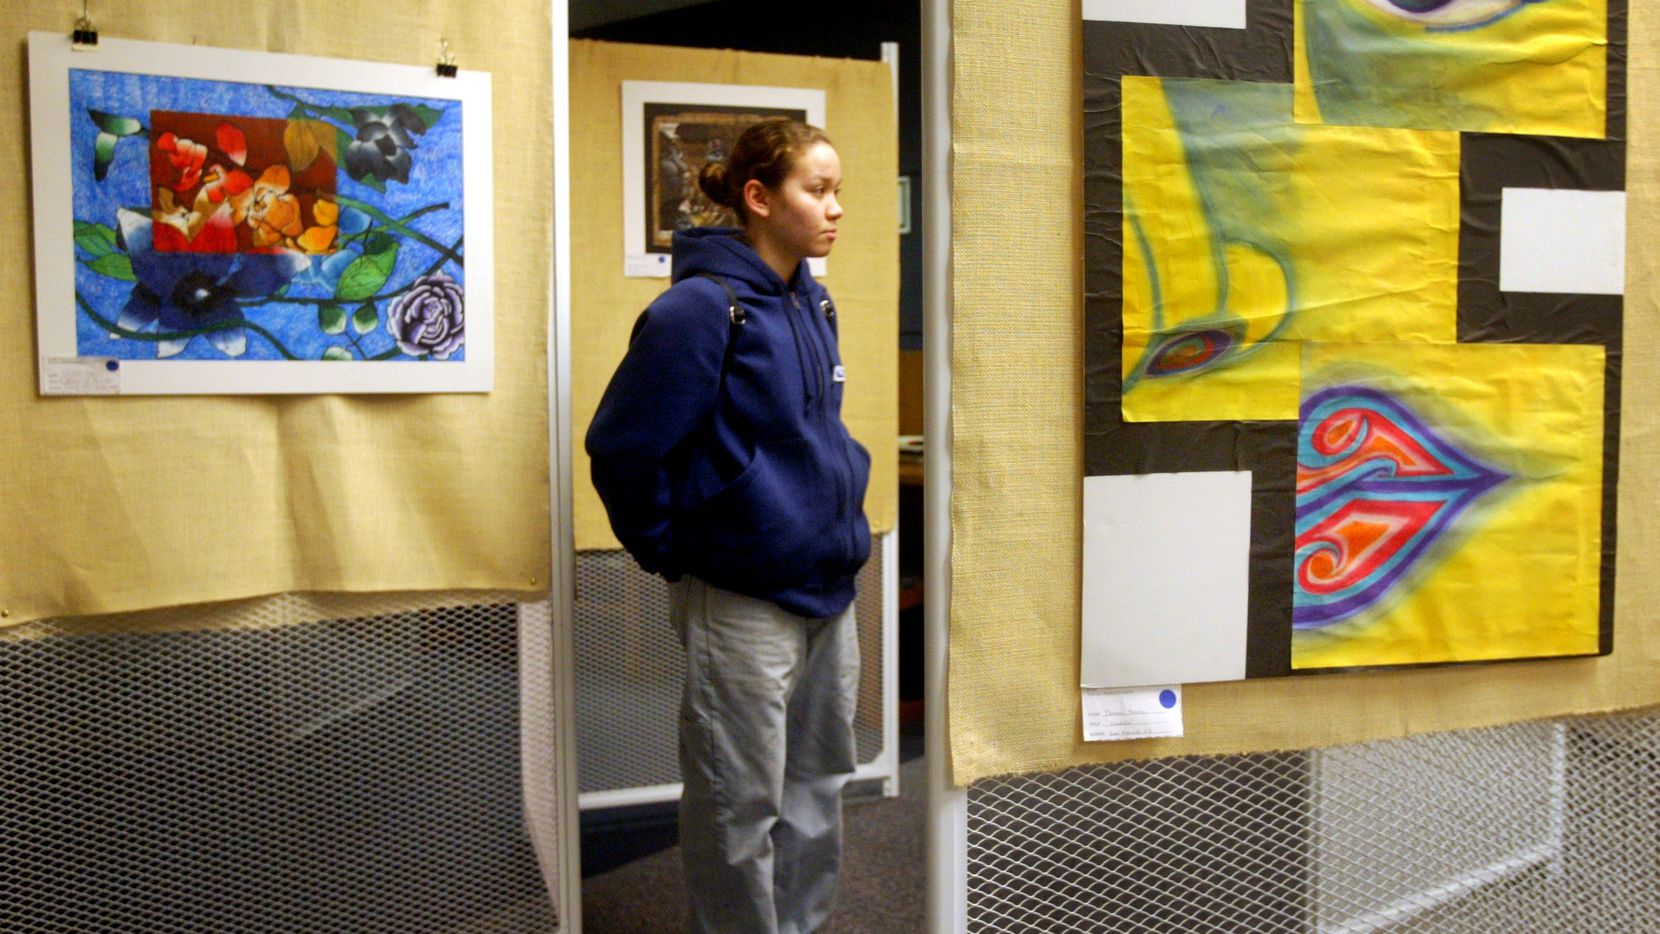 In this 2005 file photo, Angela McPherson examined artwork at the Richardson Civic Arts Society's high school art exhibit at the Richardson Public Library.